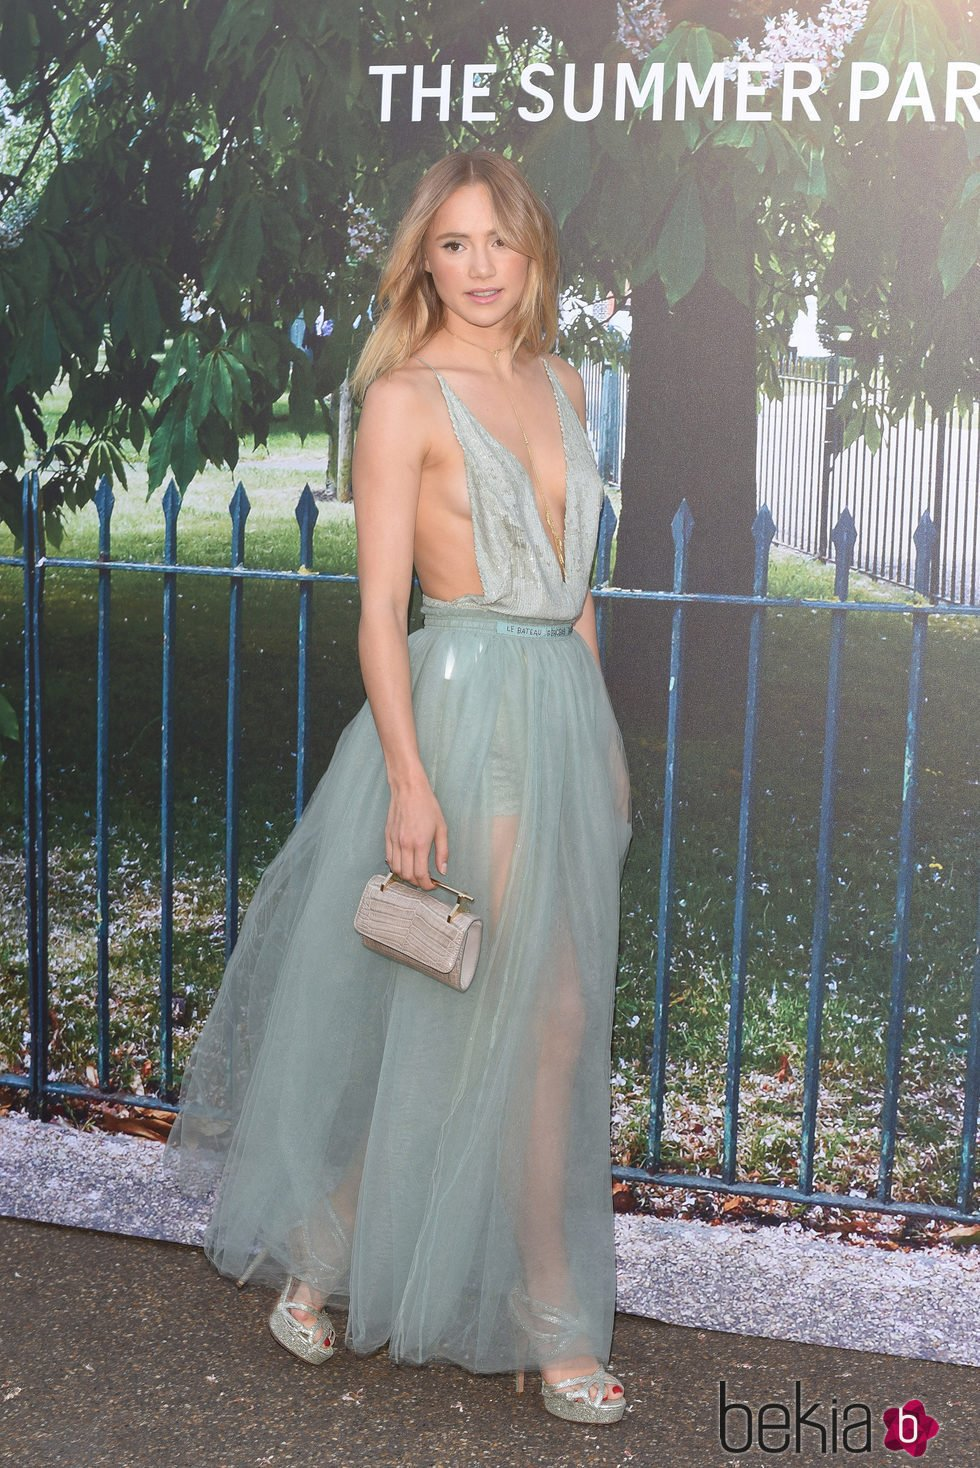 Suki Waterhouse en la fiesta de verano de The Serpentine Gallery